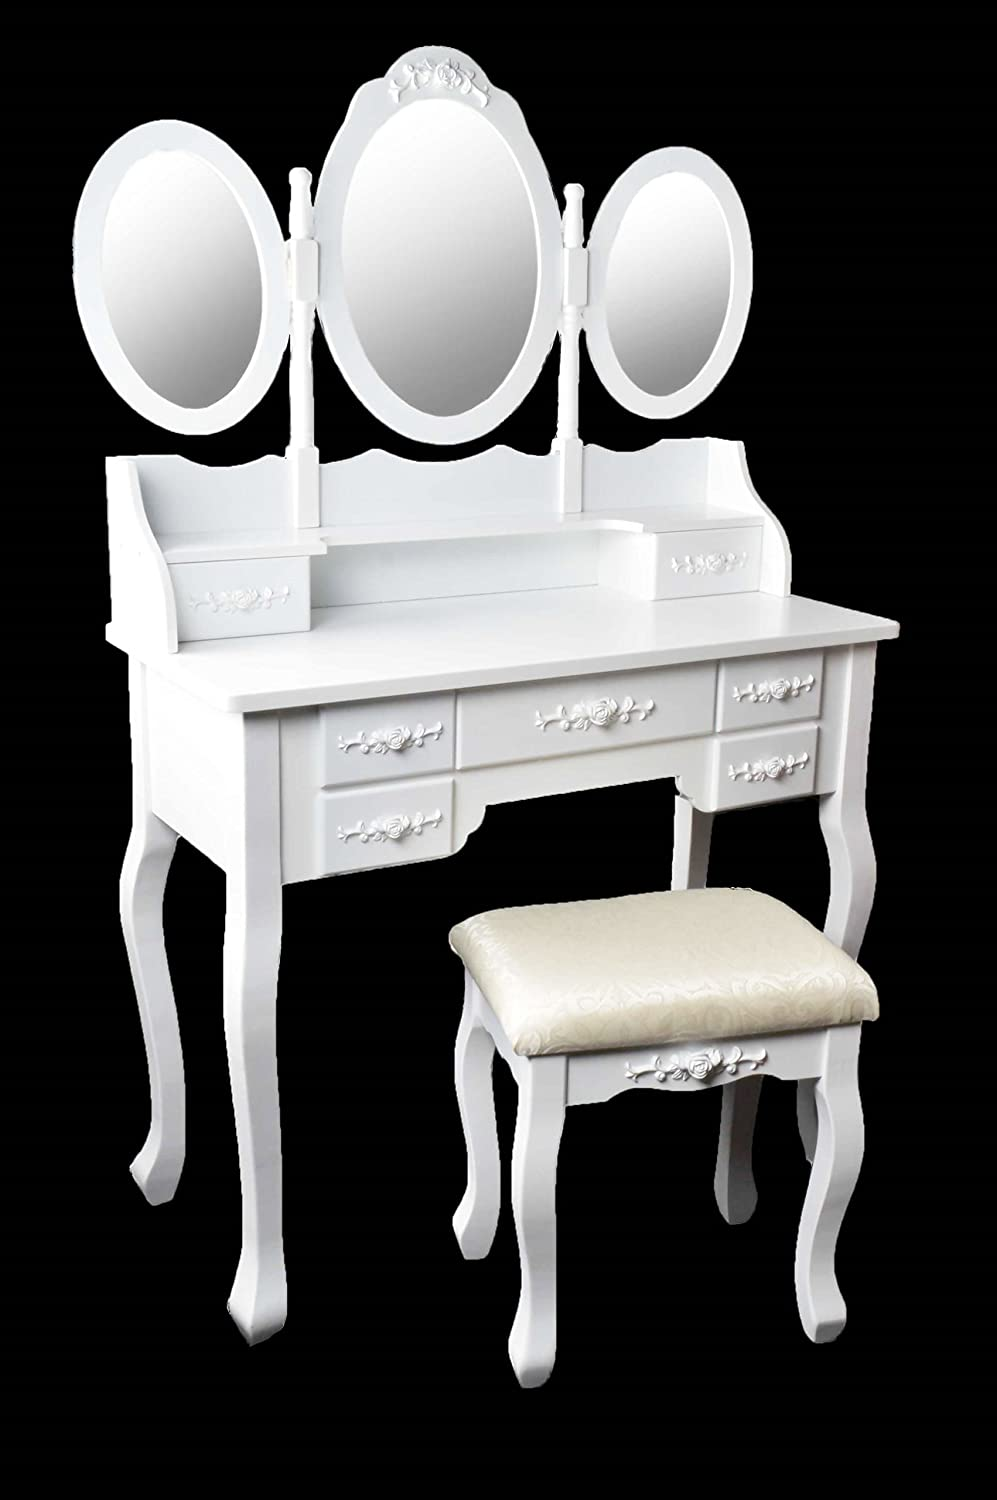 queen coiffeuse coiffeuse coiffeuse avec miroir tabouret vintage blanc. Black Bedroom Furniture Sets. Home Design Ideas